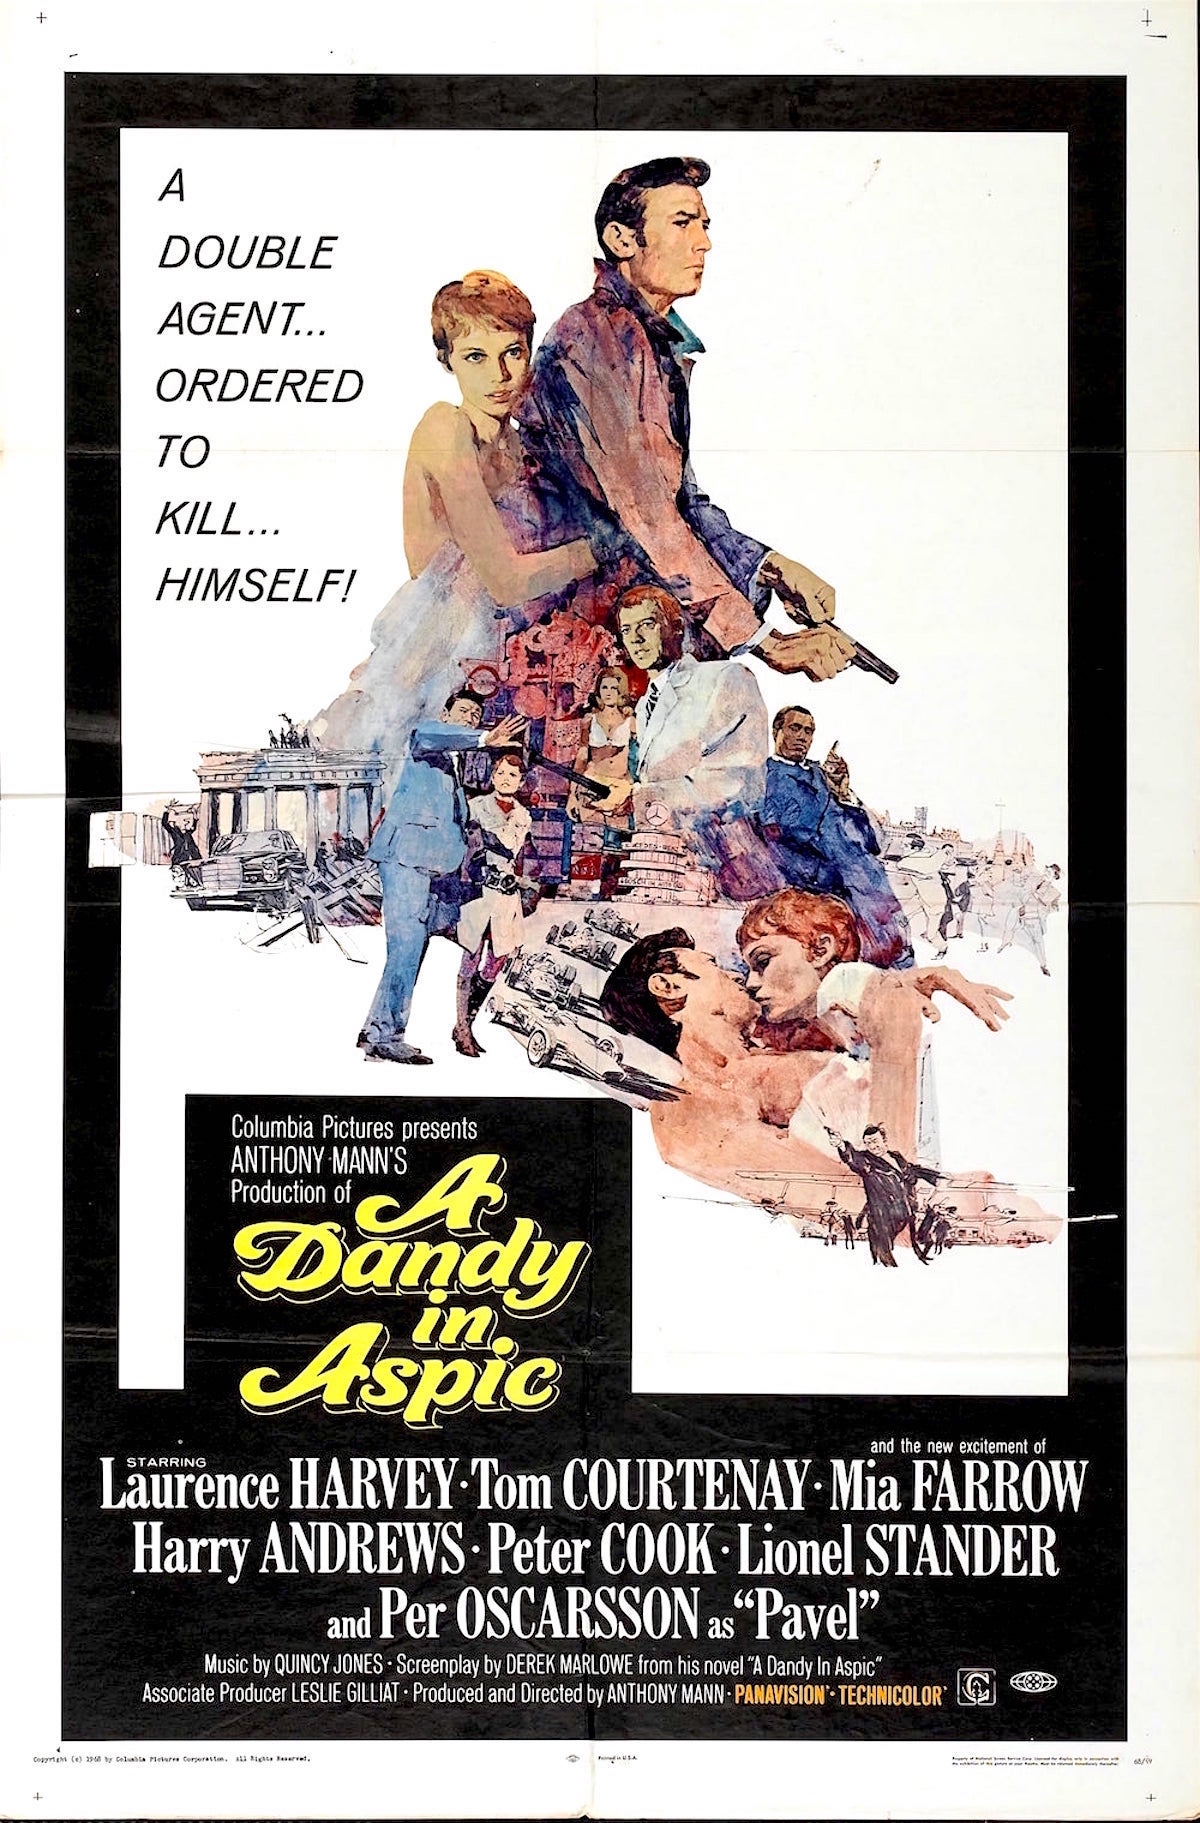 A Dandy in Aspic, Derek Marlowe, Anthony Mann